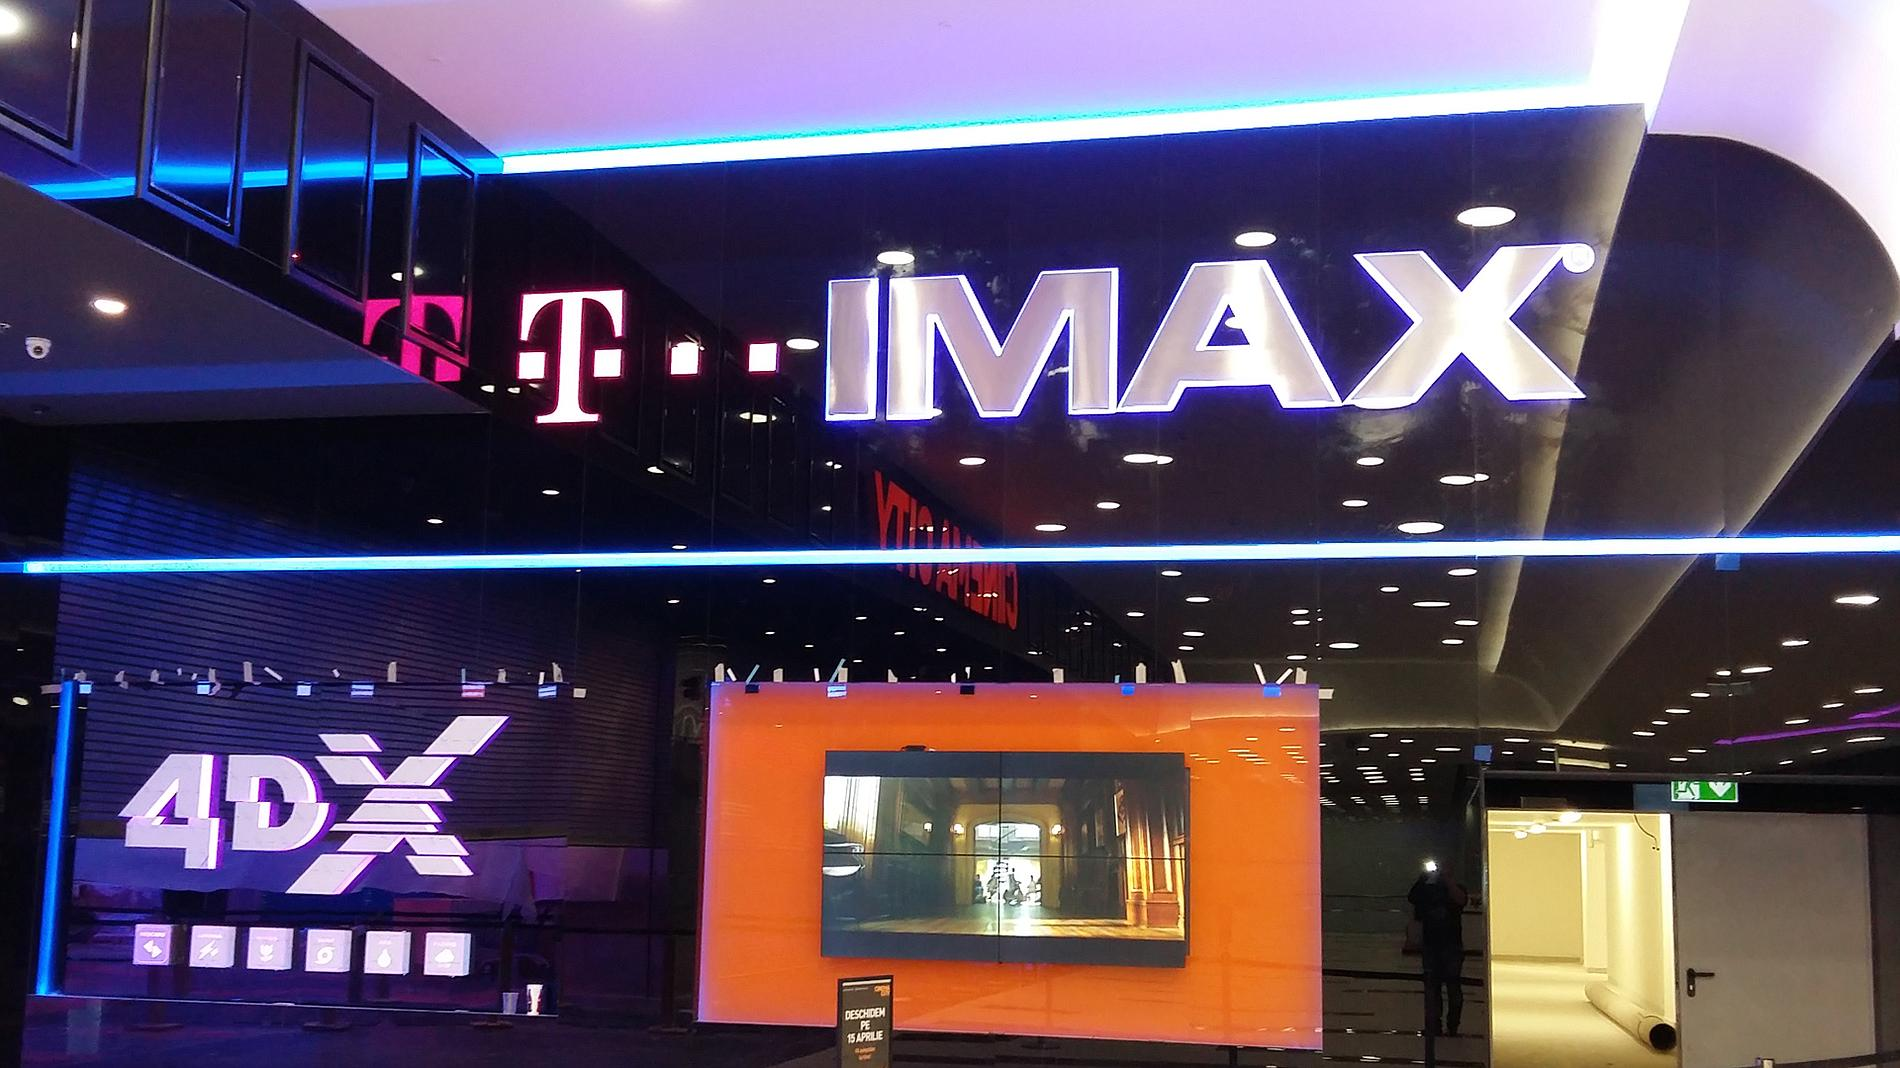 IMAX and 4DX illuminated letters